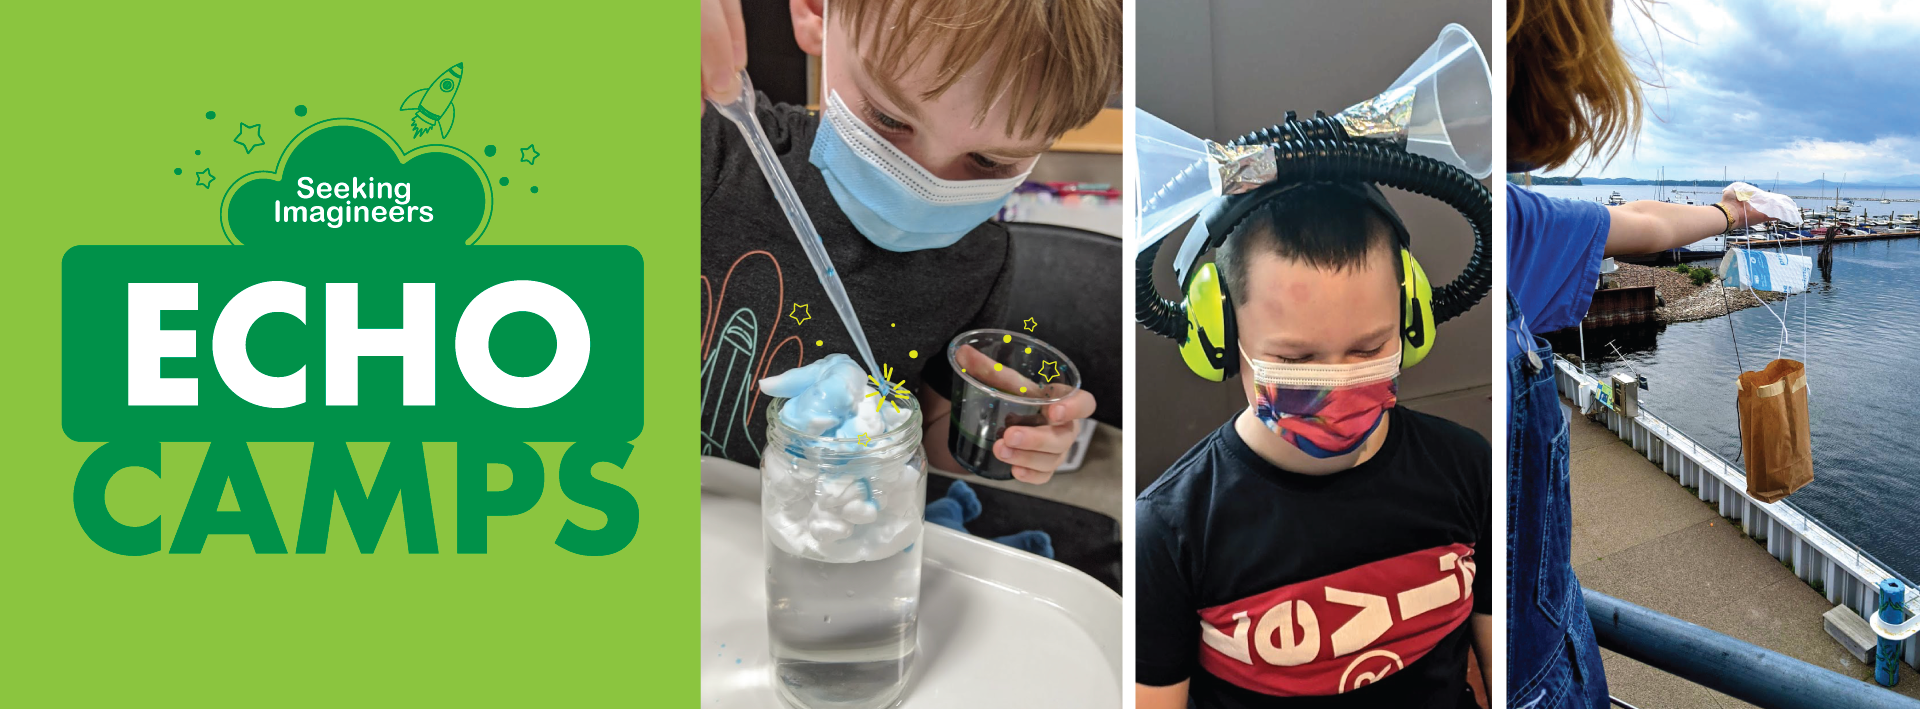 """Graphic says """"ECHO Camps, Seeking Imagineers"""" and has a photo from past camps: kid using dropper to drop color on clouds, a kid with headphones, a kid dropping a contraption over the edge of the outside deck."""